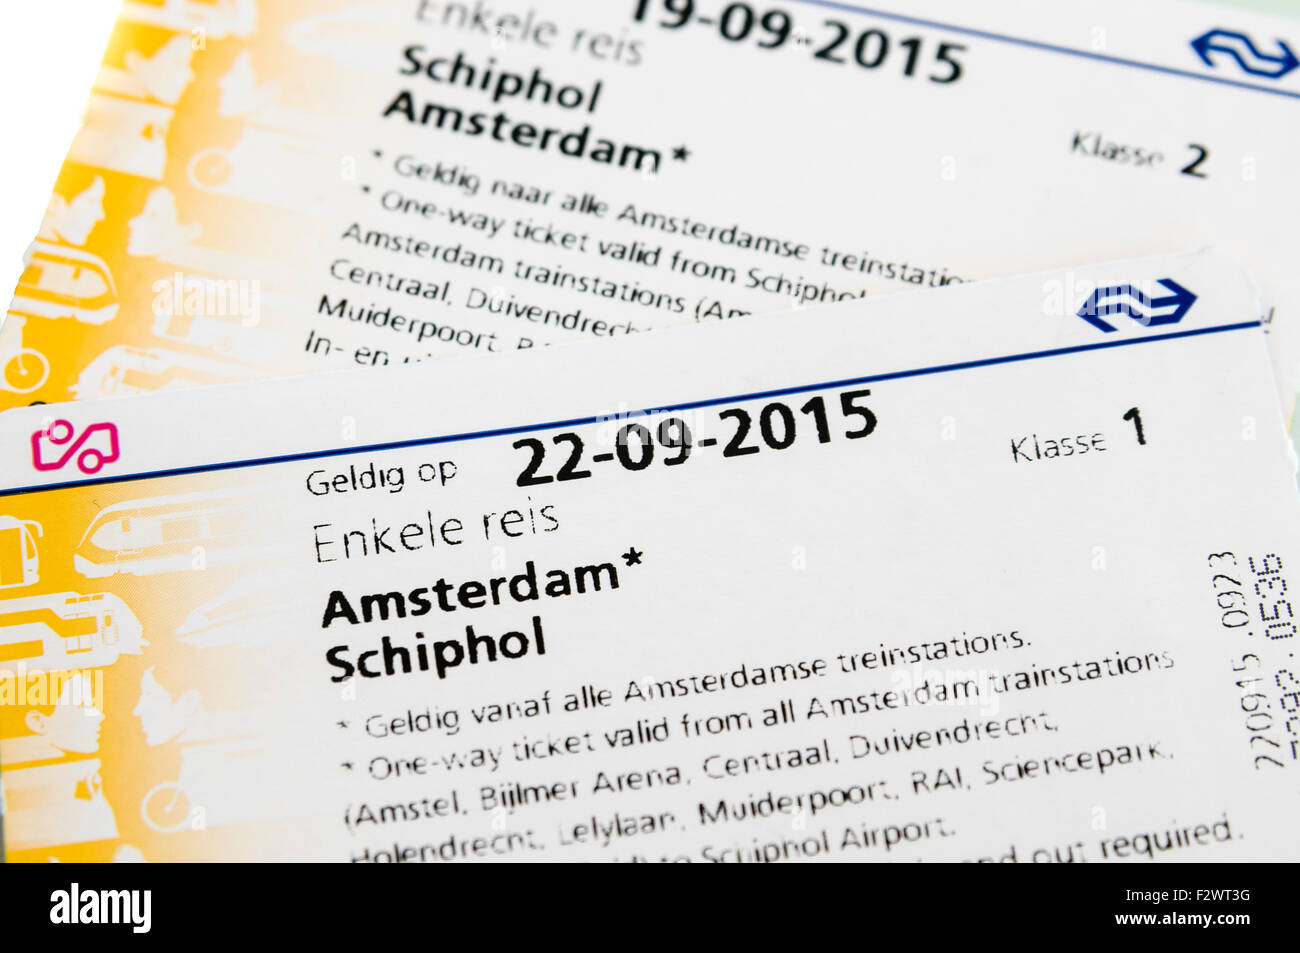 Return tickets for Amsterdam to Schiphol Airport on the Nederlandse Spoorwegen (NS) train. - Stock Image